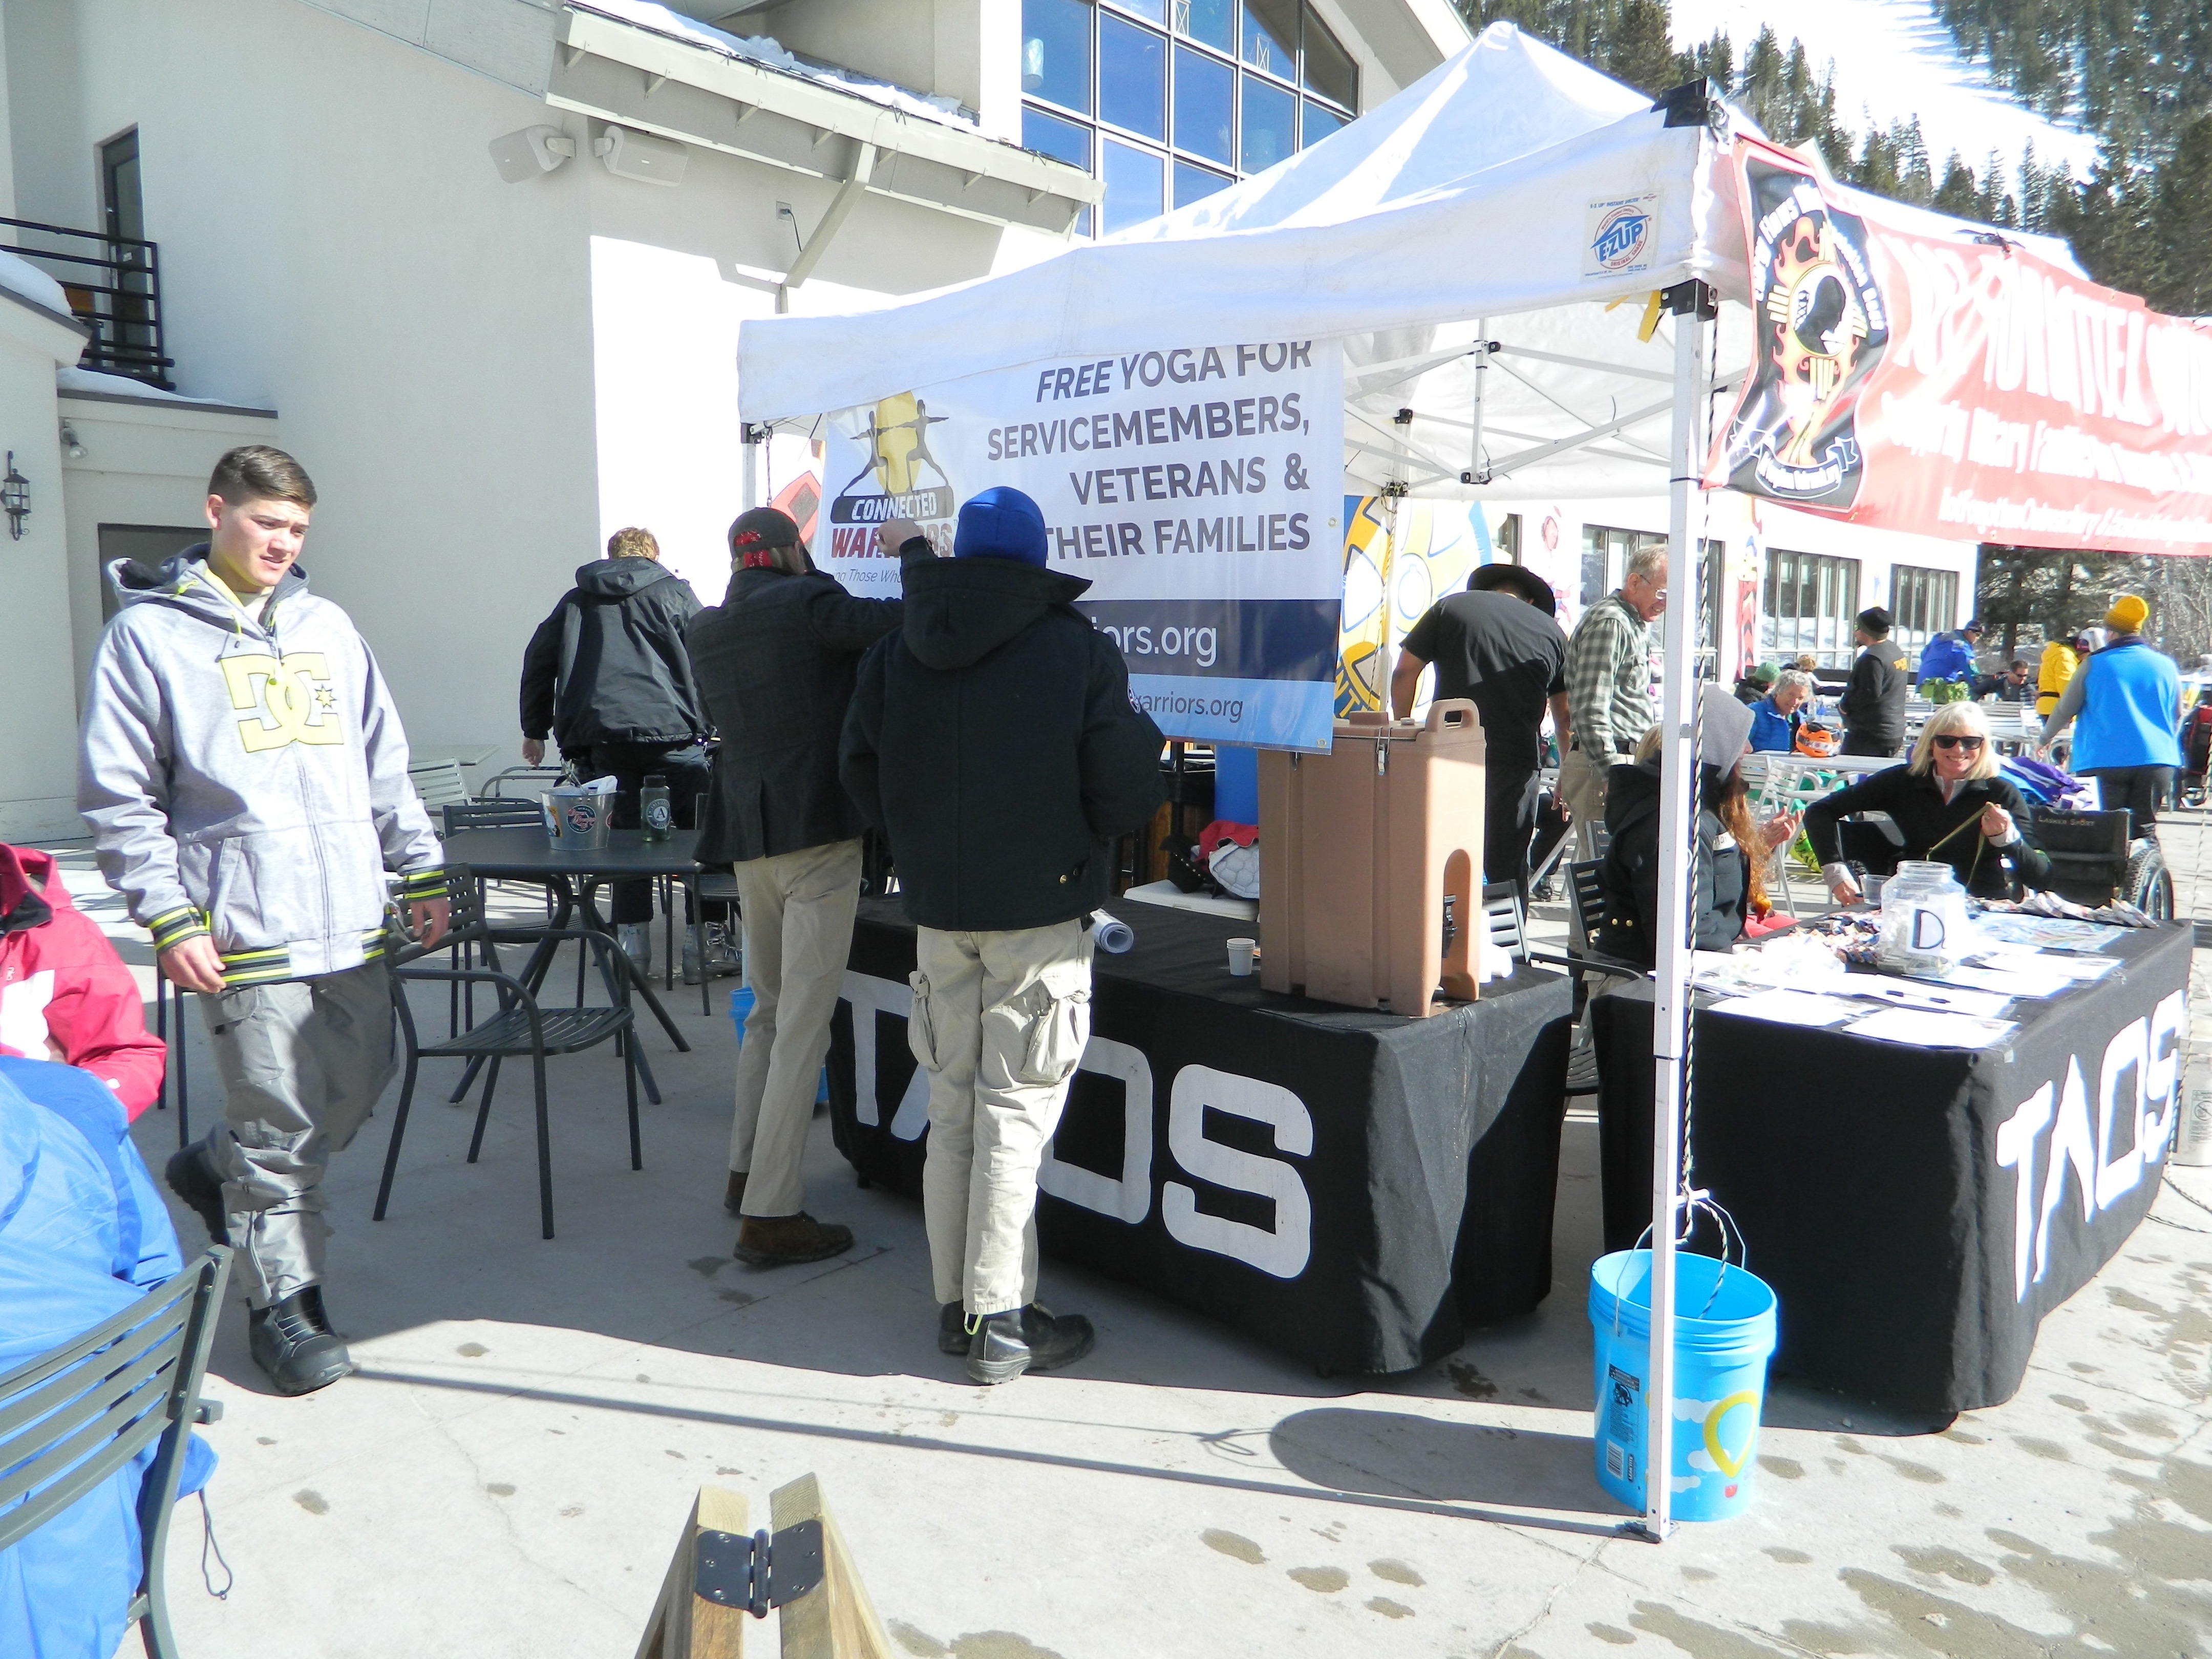 """Not Forgotten Outreach tent at Taos Ski Valley. Banner: """"Free yoga for servicemembers, veterans, & their families."""""""